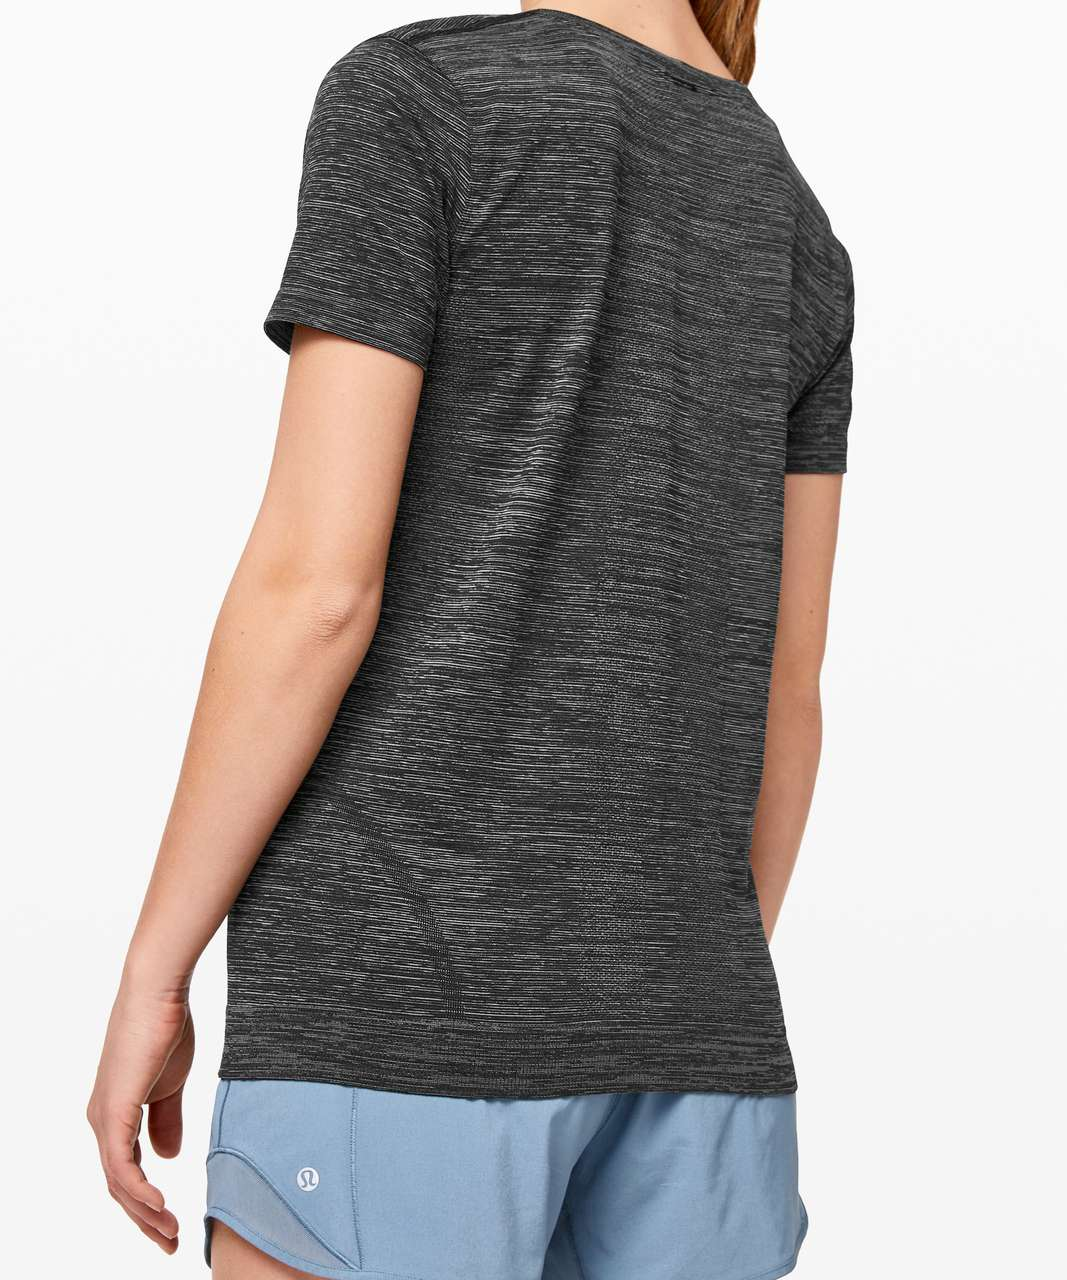 Lululemon Swiftly Tech Short Sleeve (Breeze) *Relaxed Fit - Black / White / Black